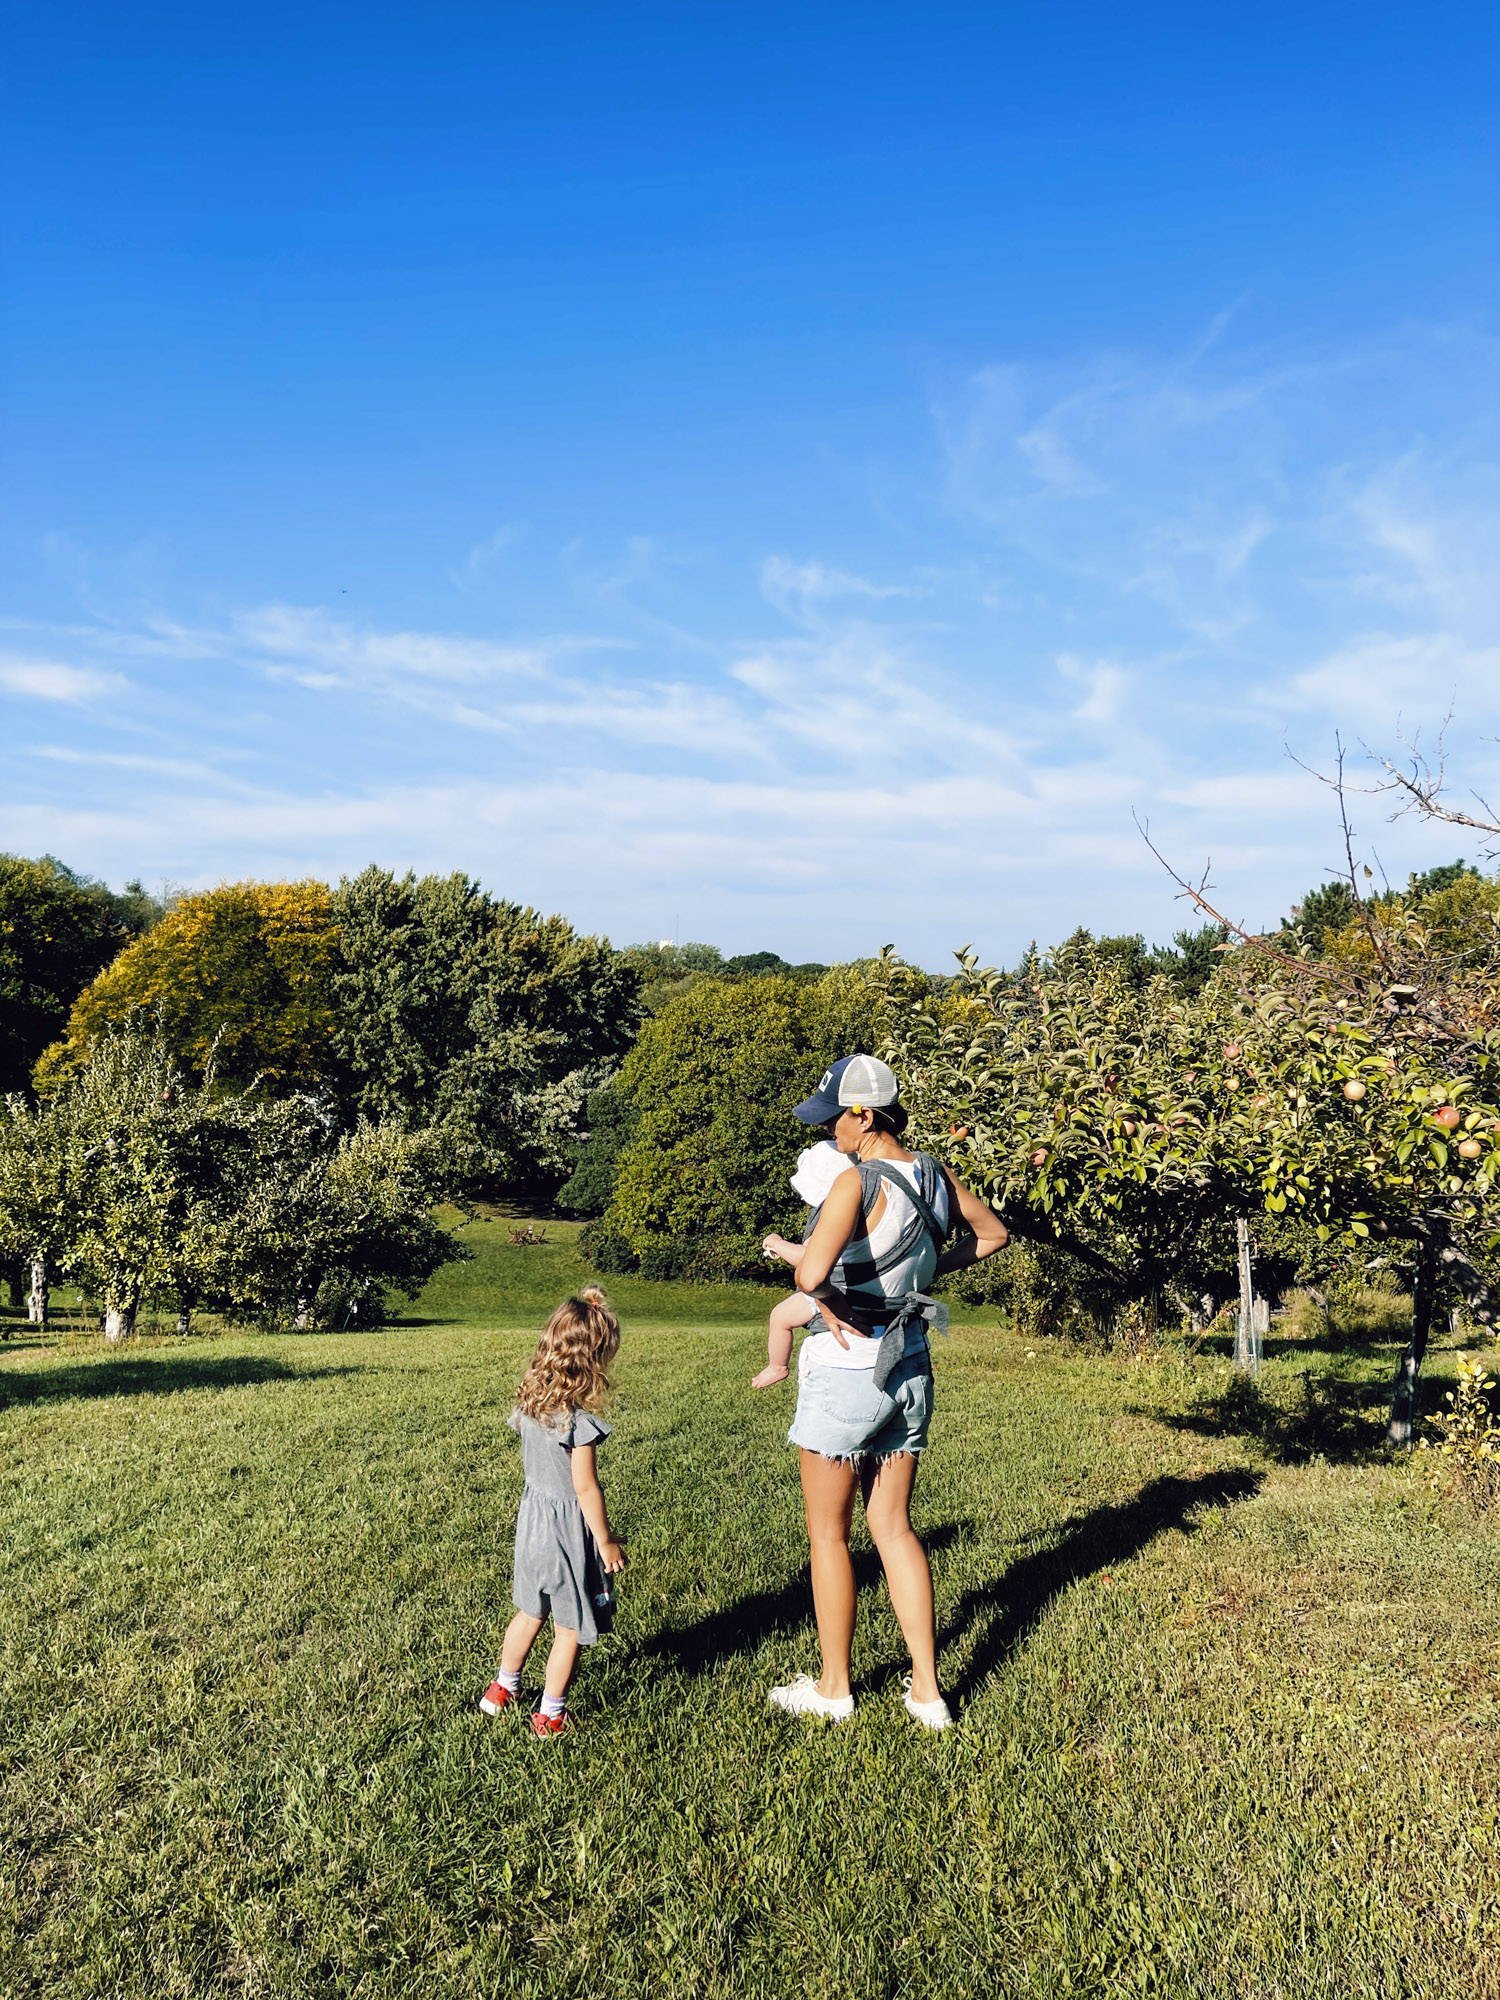 Woman and kids at an apple orchard.